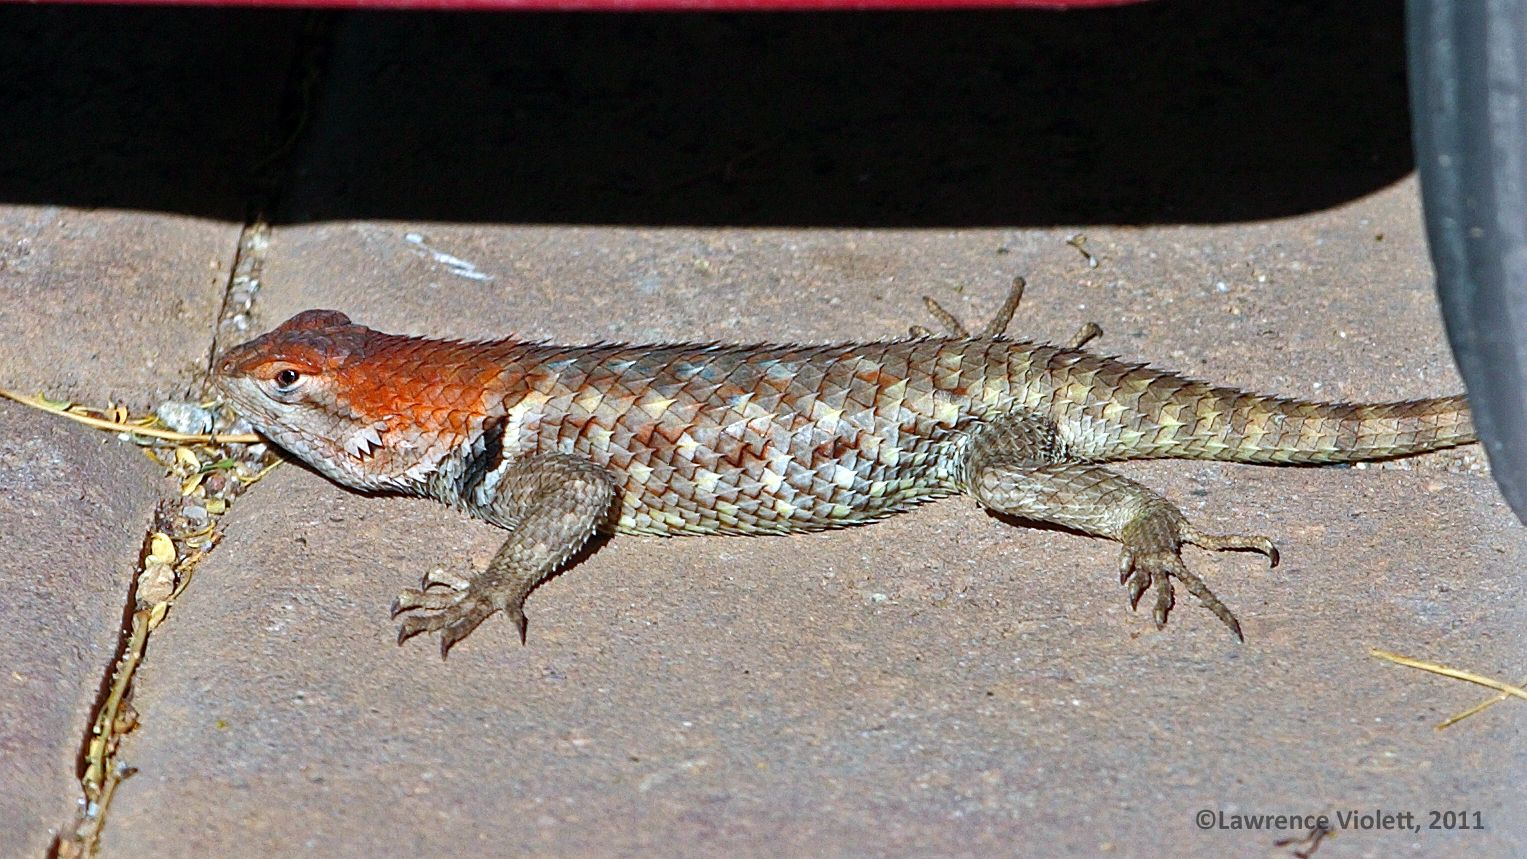 A female Desert Spiny lizard in mating colors. | 両生類, 爬虫類 ...